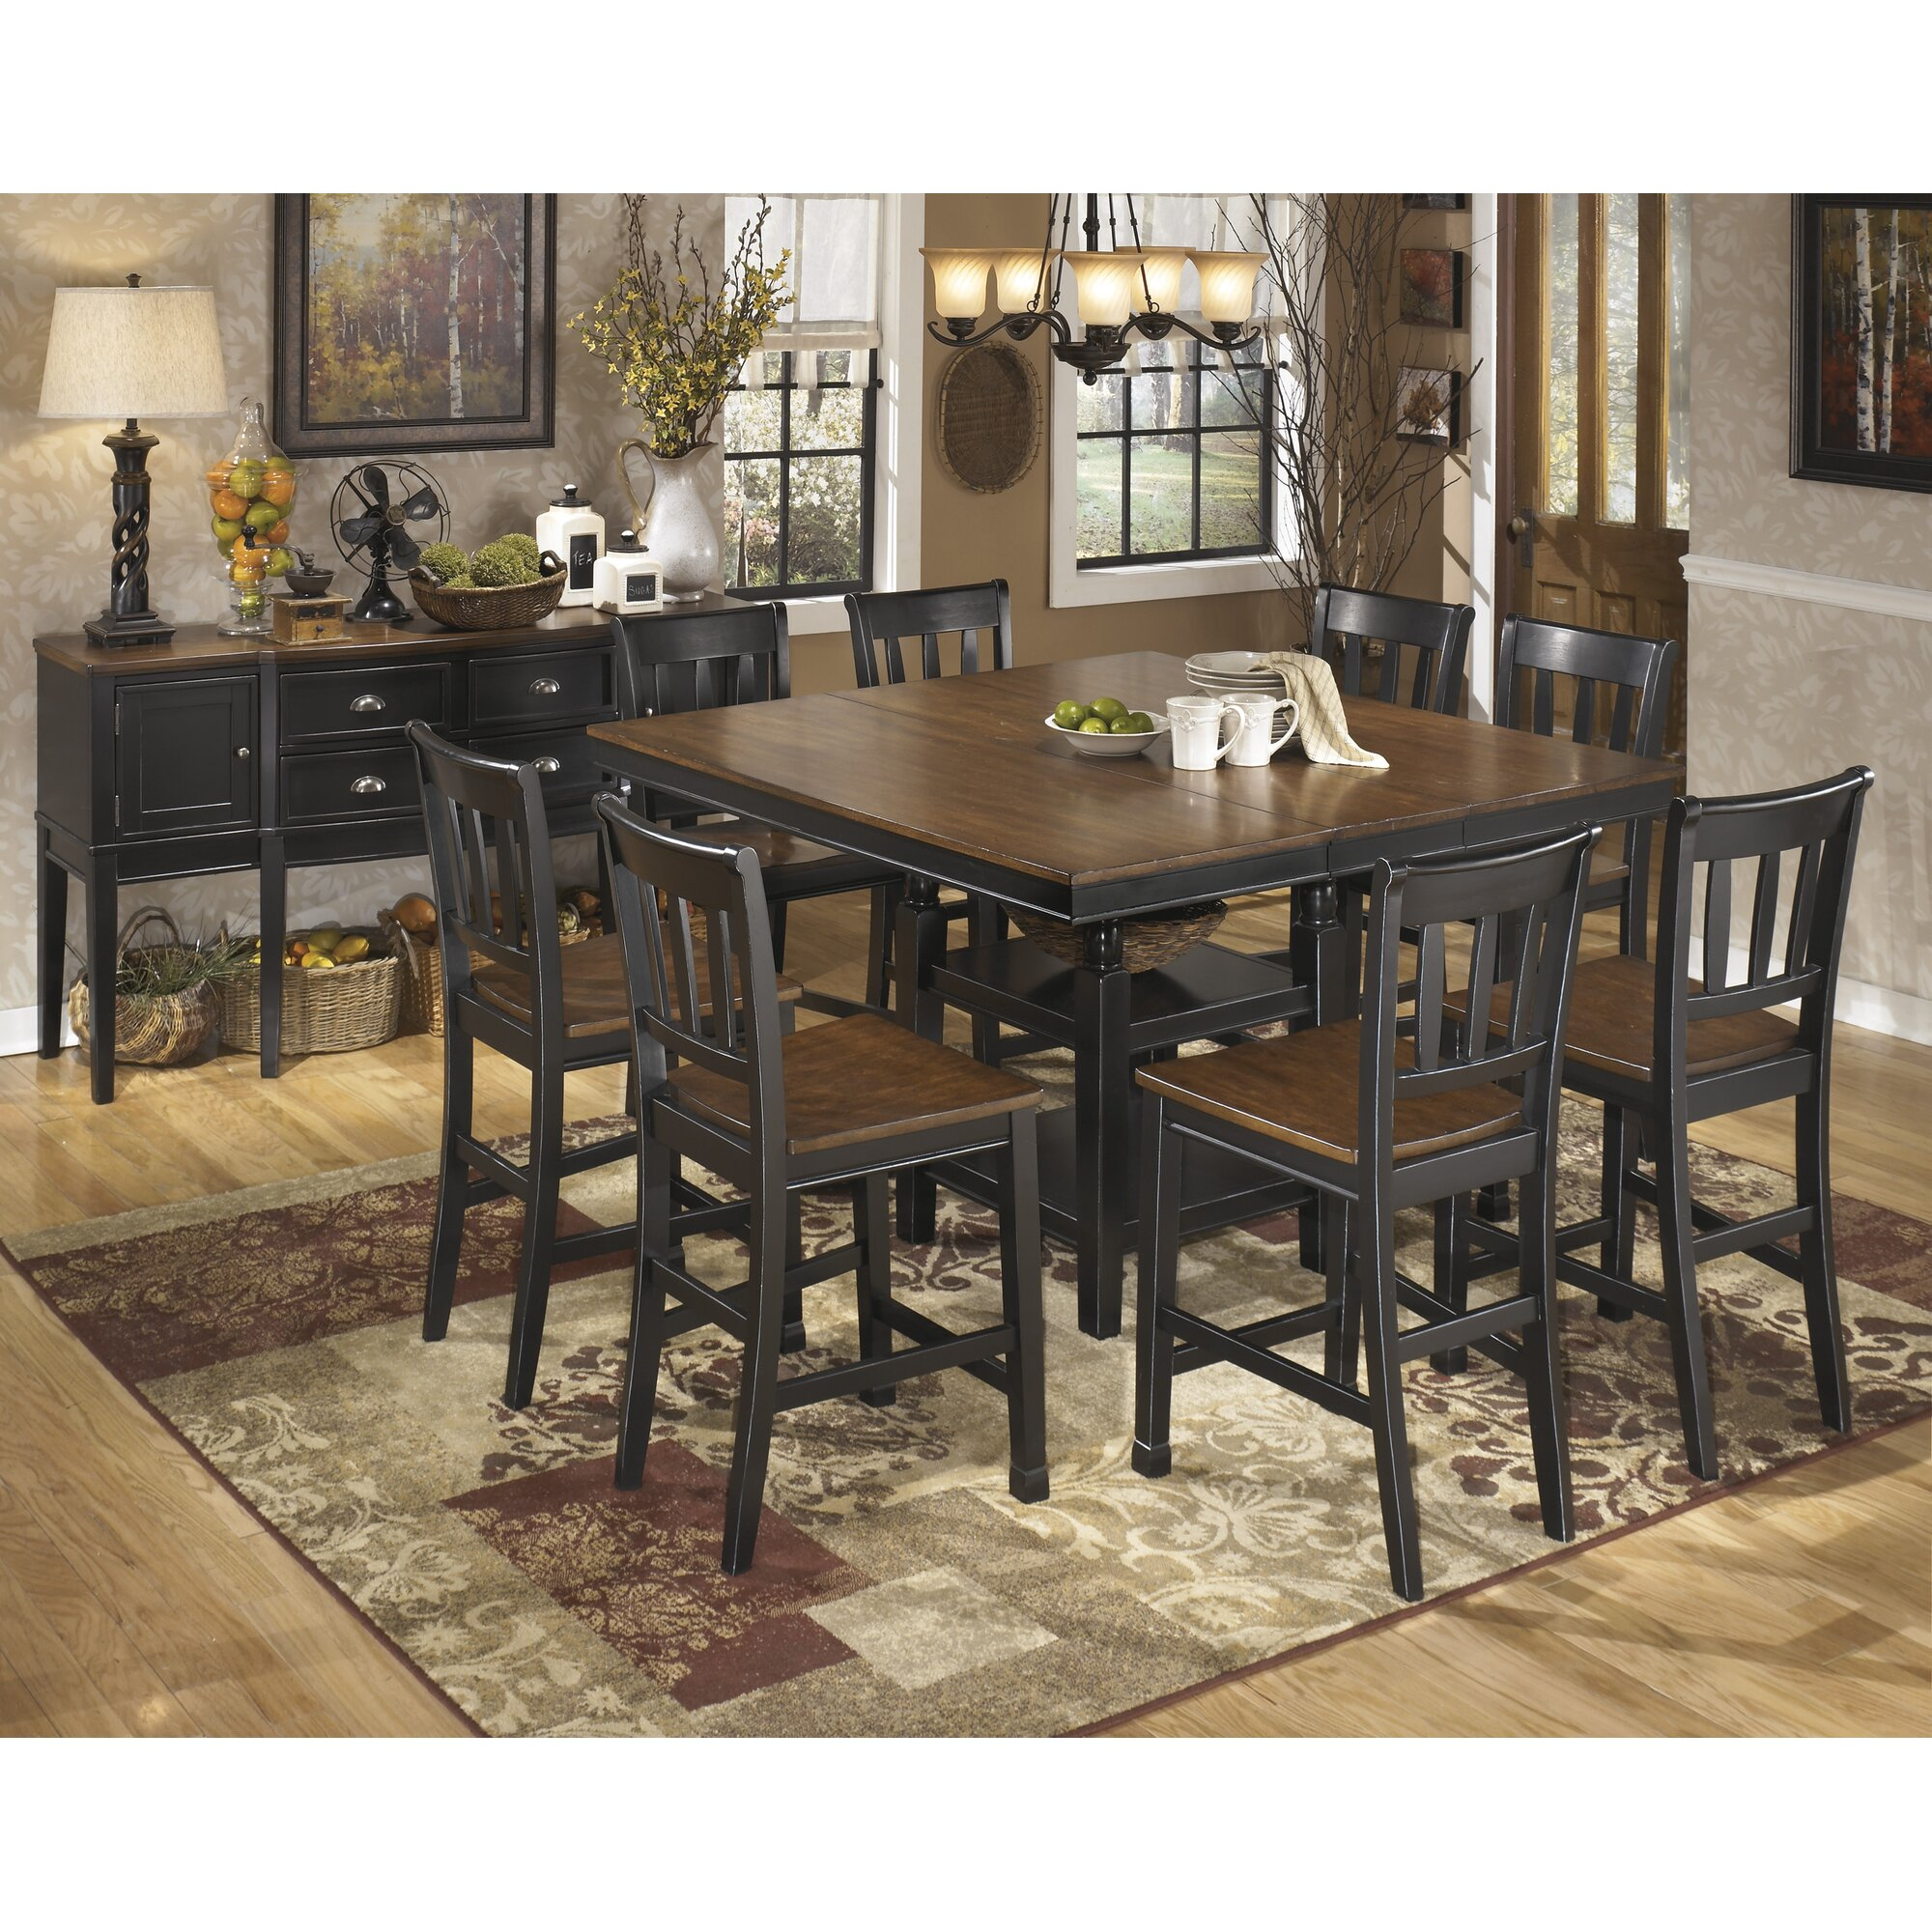 Andover Mills Rollins Extendable Dining Table Reviews: Andover Mills Velma Counter Height Extendable Dining Table